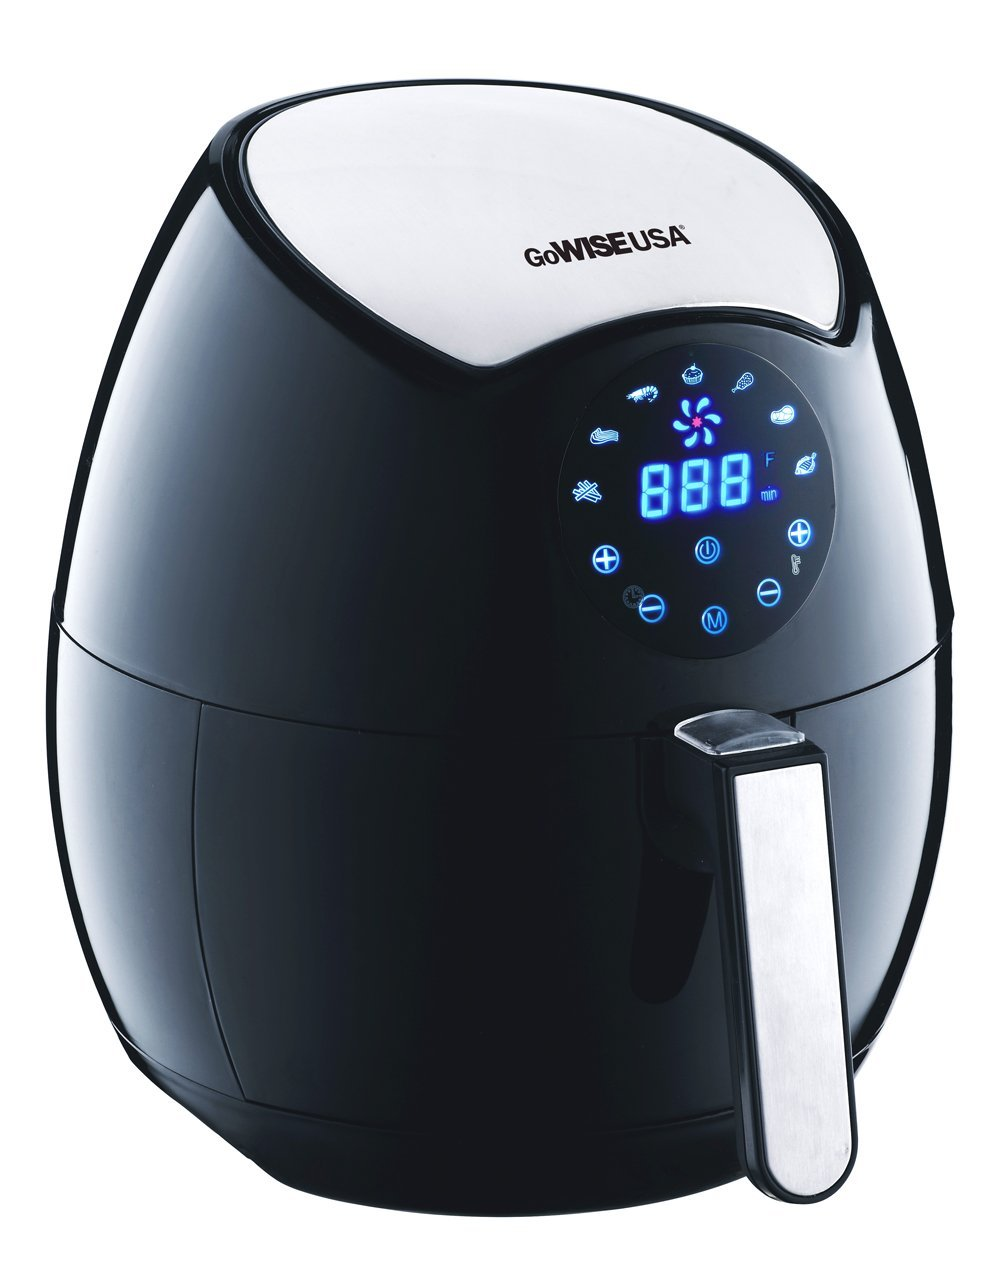 Gowise USA GW22621 4th Generation Electric Air Fryer Review